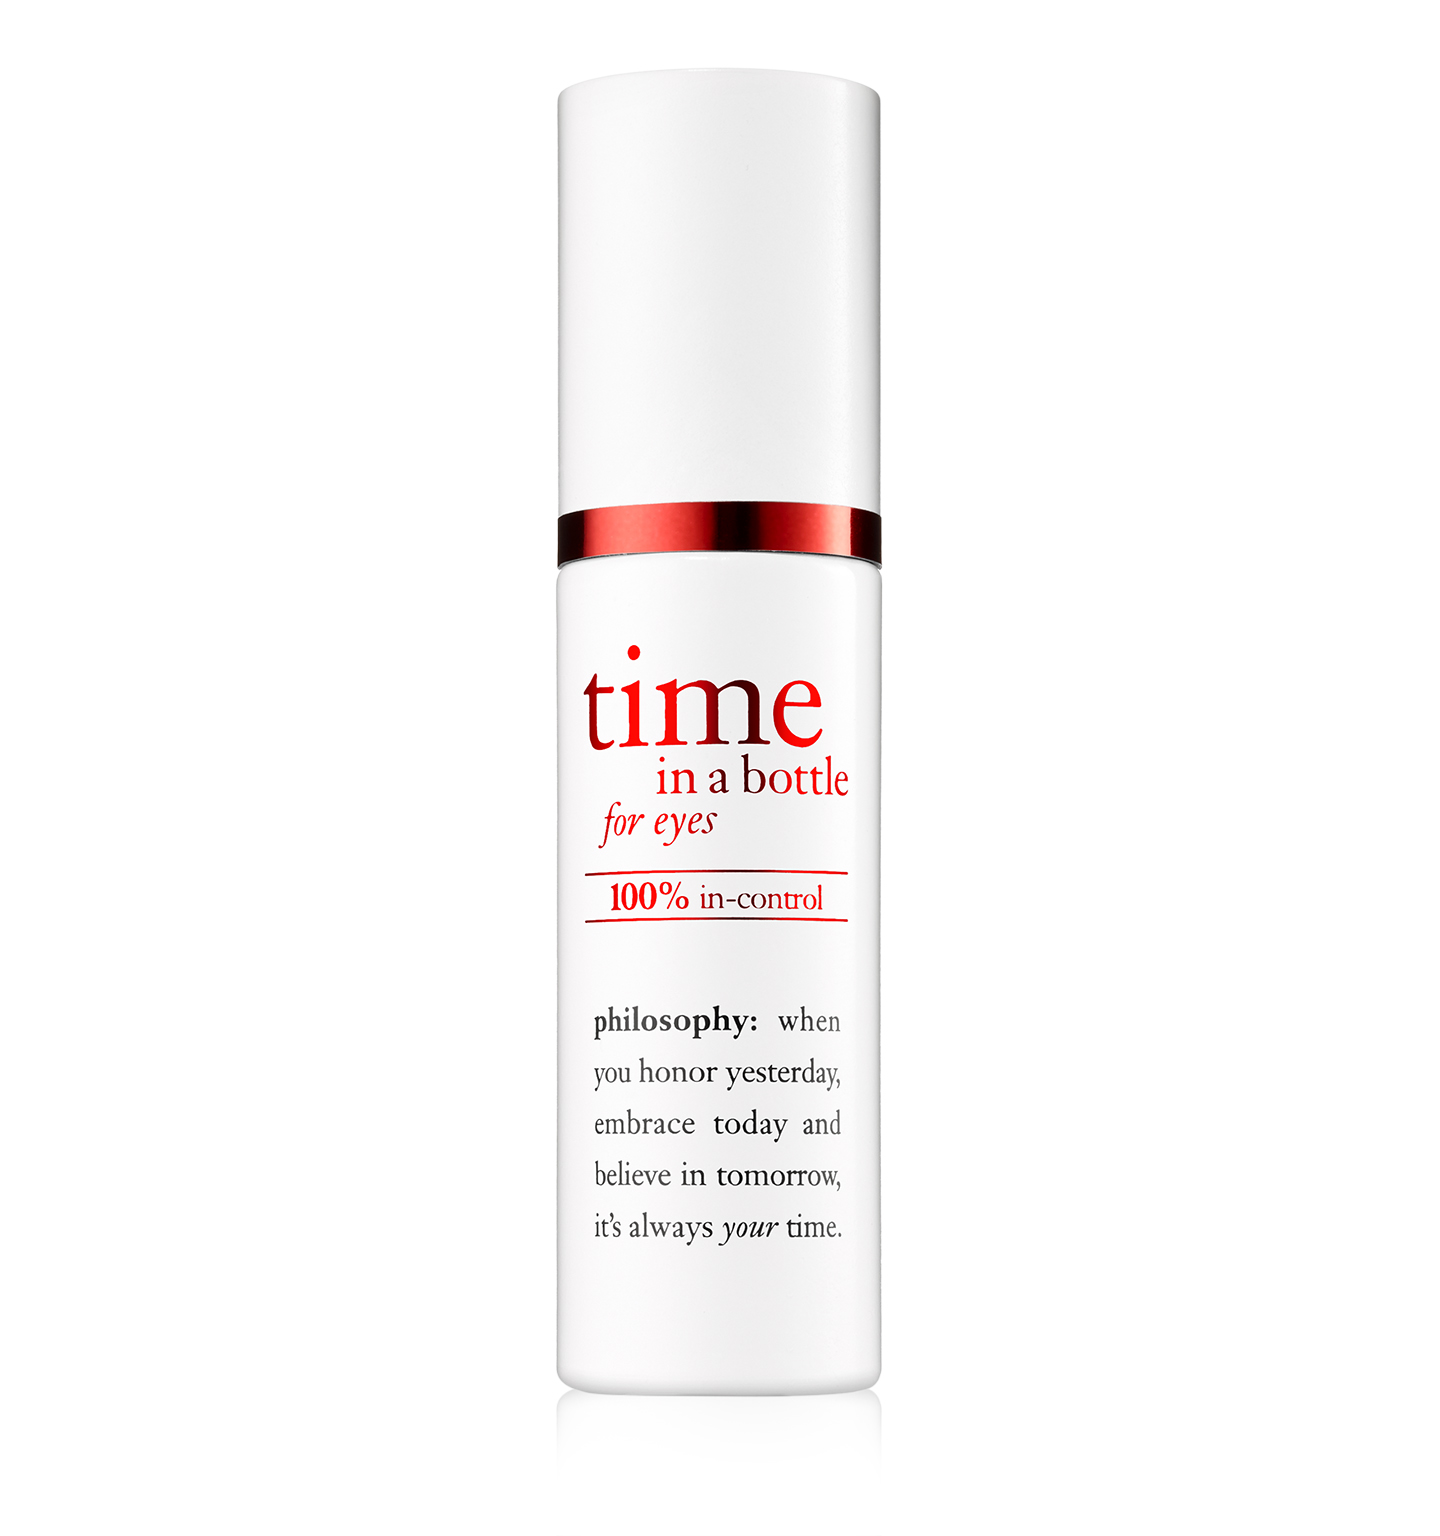 philosophy, time in a bottle eye serum